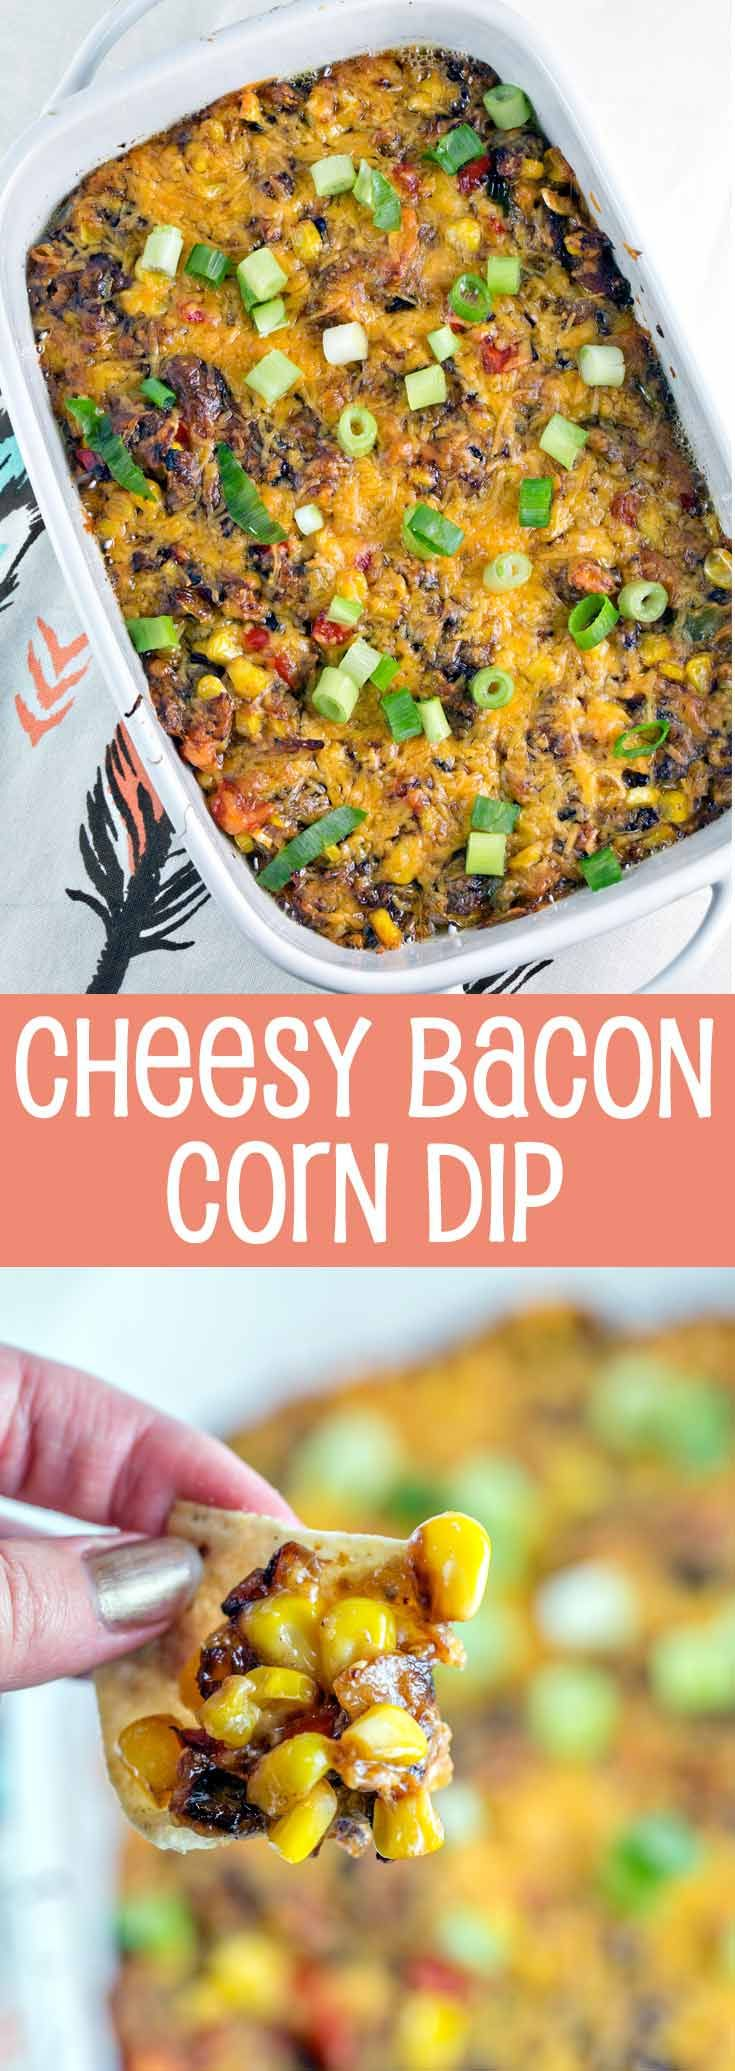 Cheesy Bacon Corn Dip: perfect for game day or a party, this gluten free make-ahead dip is a crowd favorite! {Bunsen Burner Bakery}